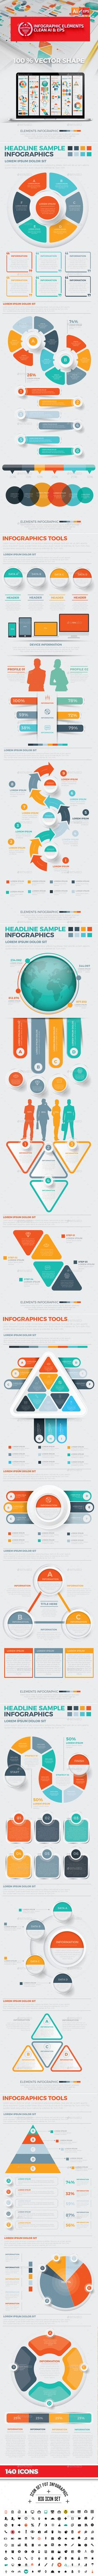 Big Infographics Design. Download: https://graphicriver.net/item/big-infographics-design/18704641?ref=thanhdesign